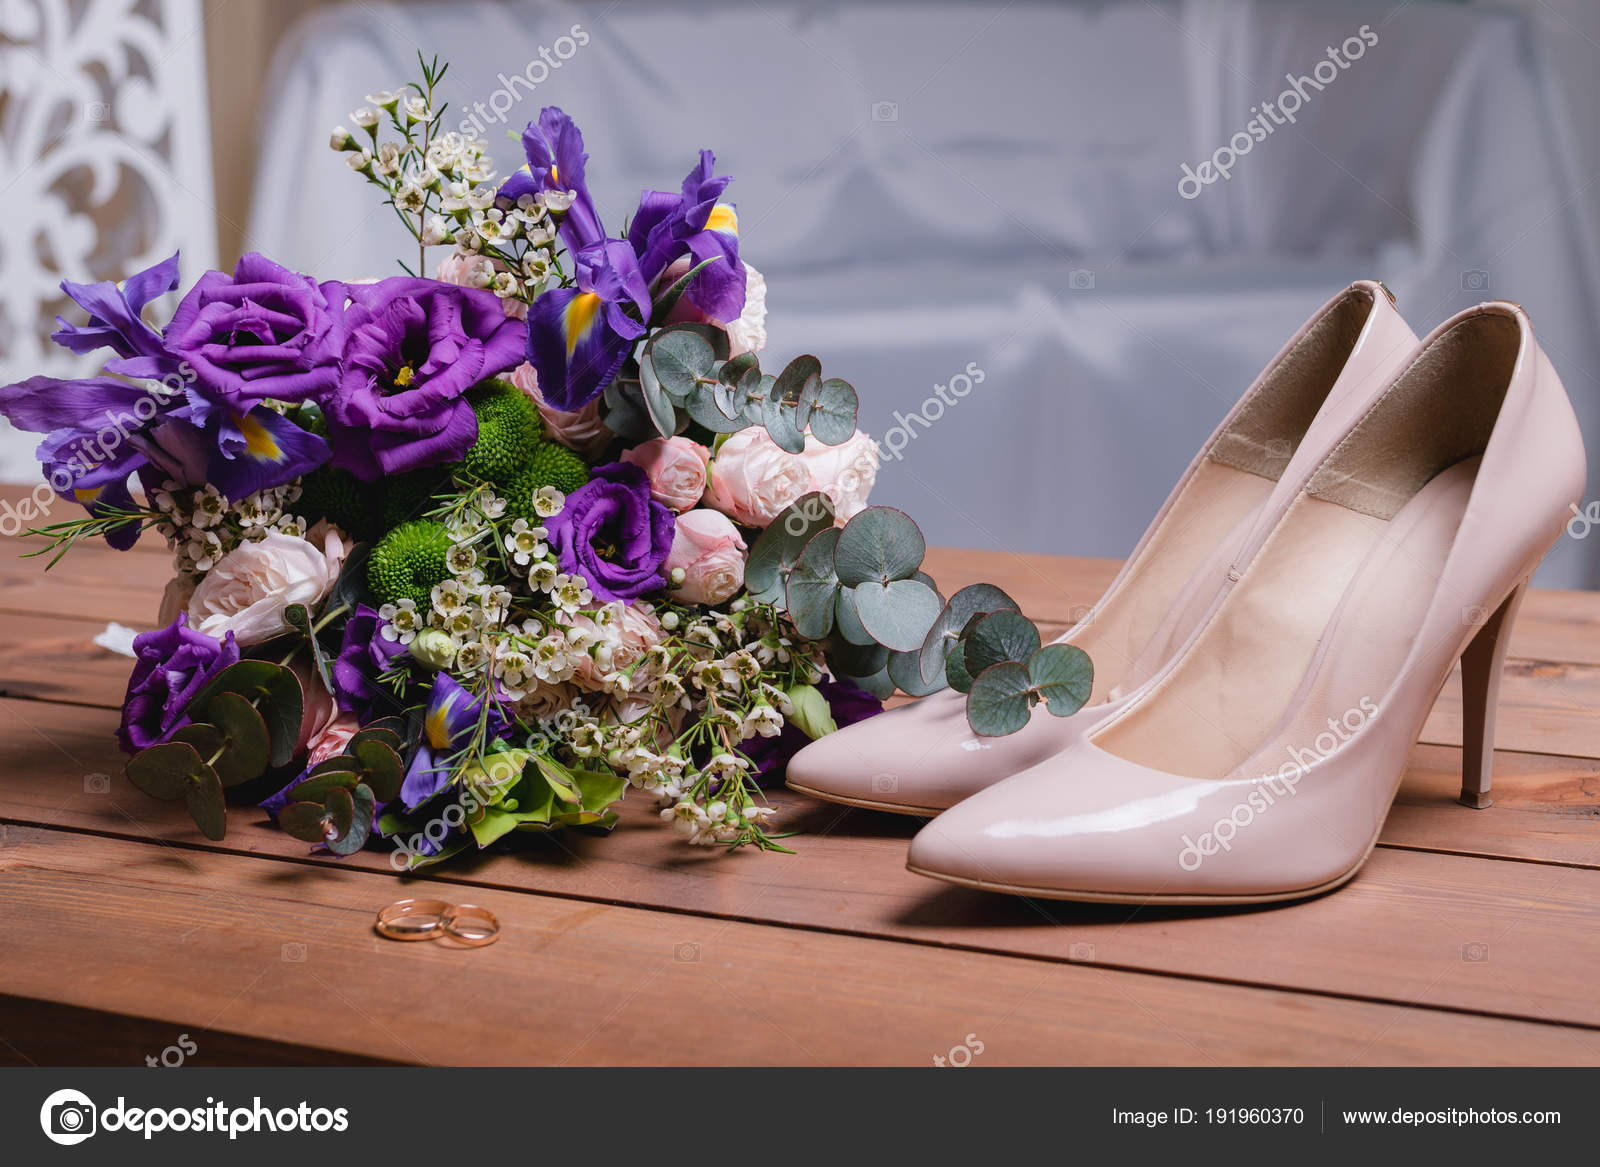 On A Wooden Table A Wedding Bouquet With Green Leaves Purple And